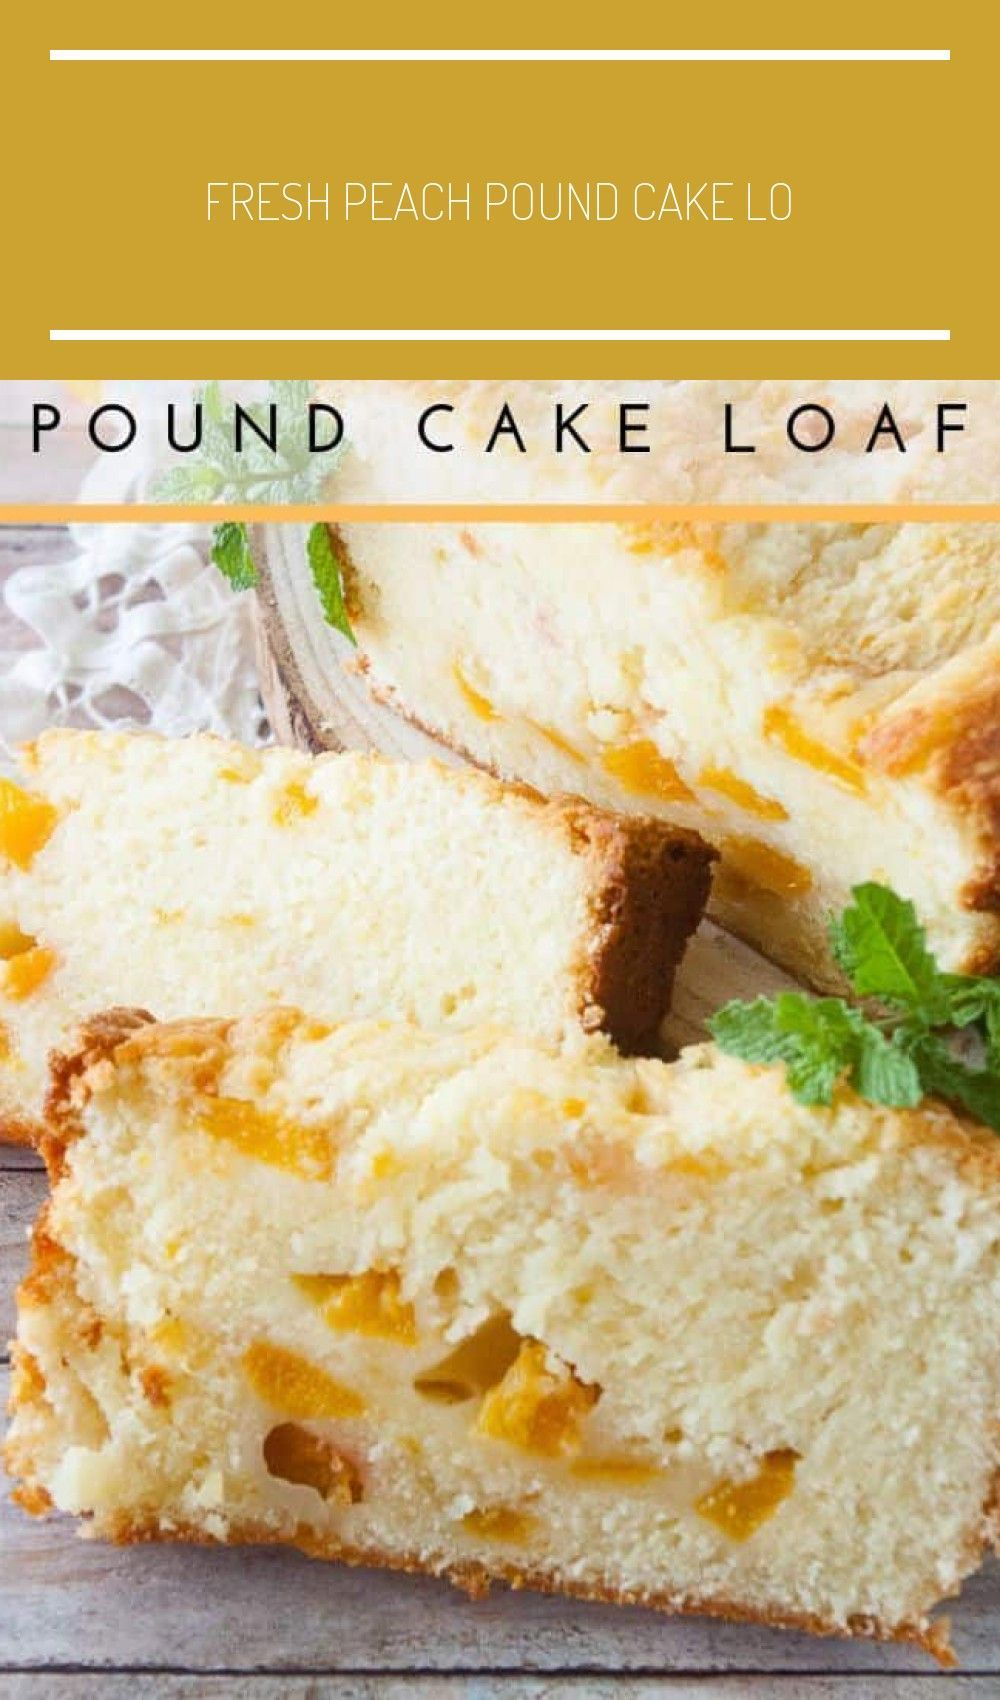 Fresh Peach Pound Cake Loaf #peachcobblerpoundcake If you love fresh peach cobblers or peach pies you'll love my recipe for a fresh peach pound cake loaf!  An easy recipe for a peach dessert you'll love! #peach #cake #dessert #MCO #peachcobblerpoundcake Fresh Peach Pound Cake Loaf #peachcobblerpoundcake If you love fresh peach cobblers or peach pies you'll love my recipe for a fresh peach pound cake loaf!  An easy recipe for a peach dessert you'll love! #peach #cake #dessert #MCO #peach cobbler #peachcobblerpoundcake